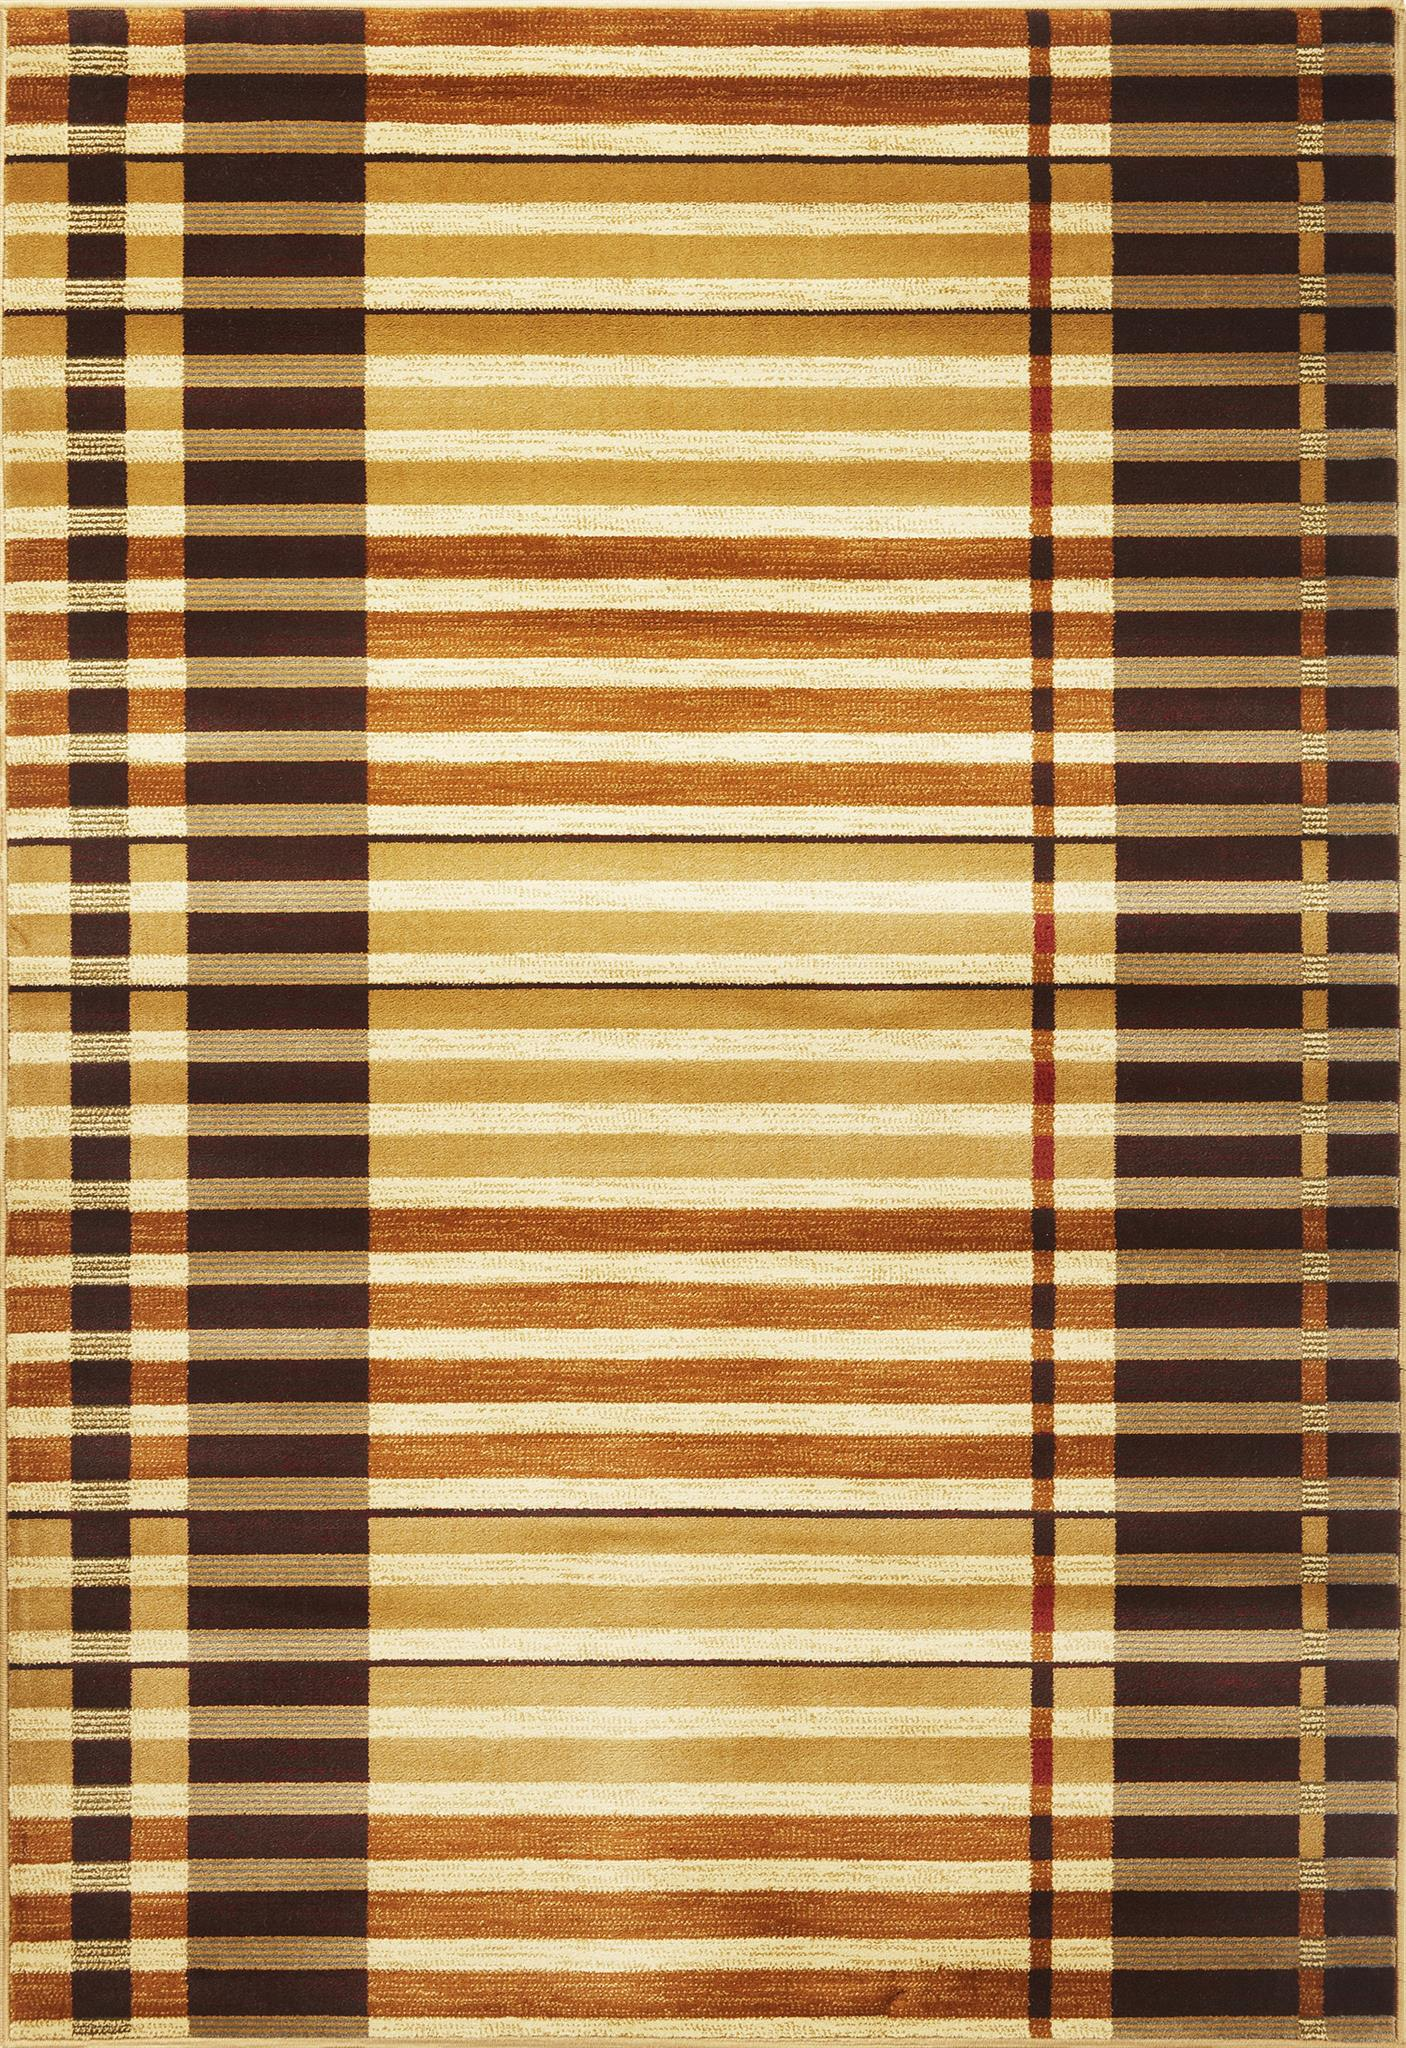 Lifestyles 5475 Earthtone Stripes